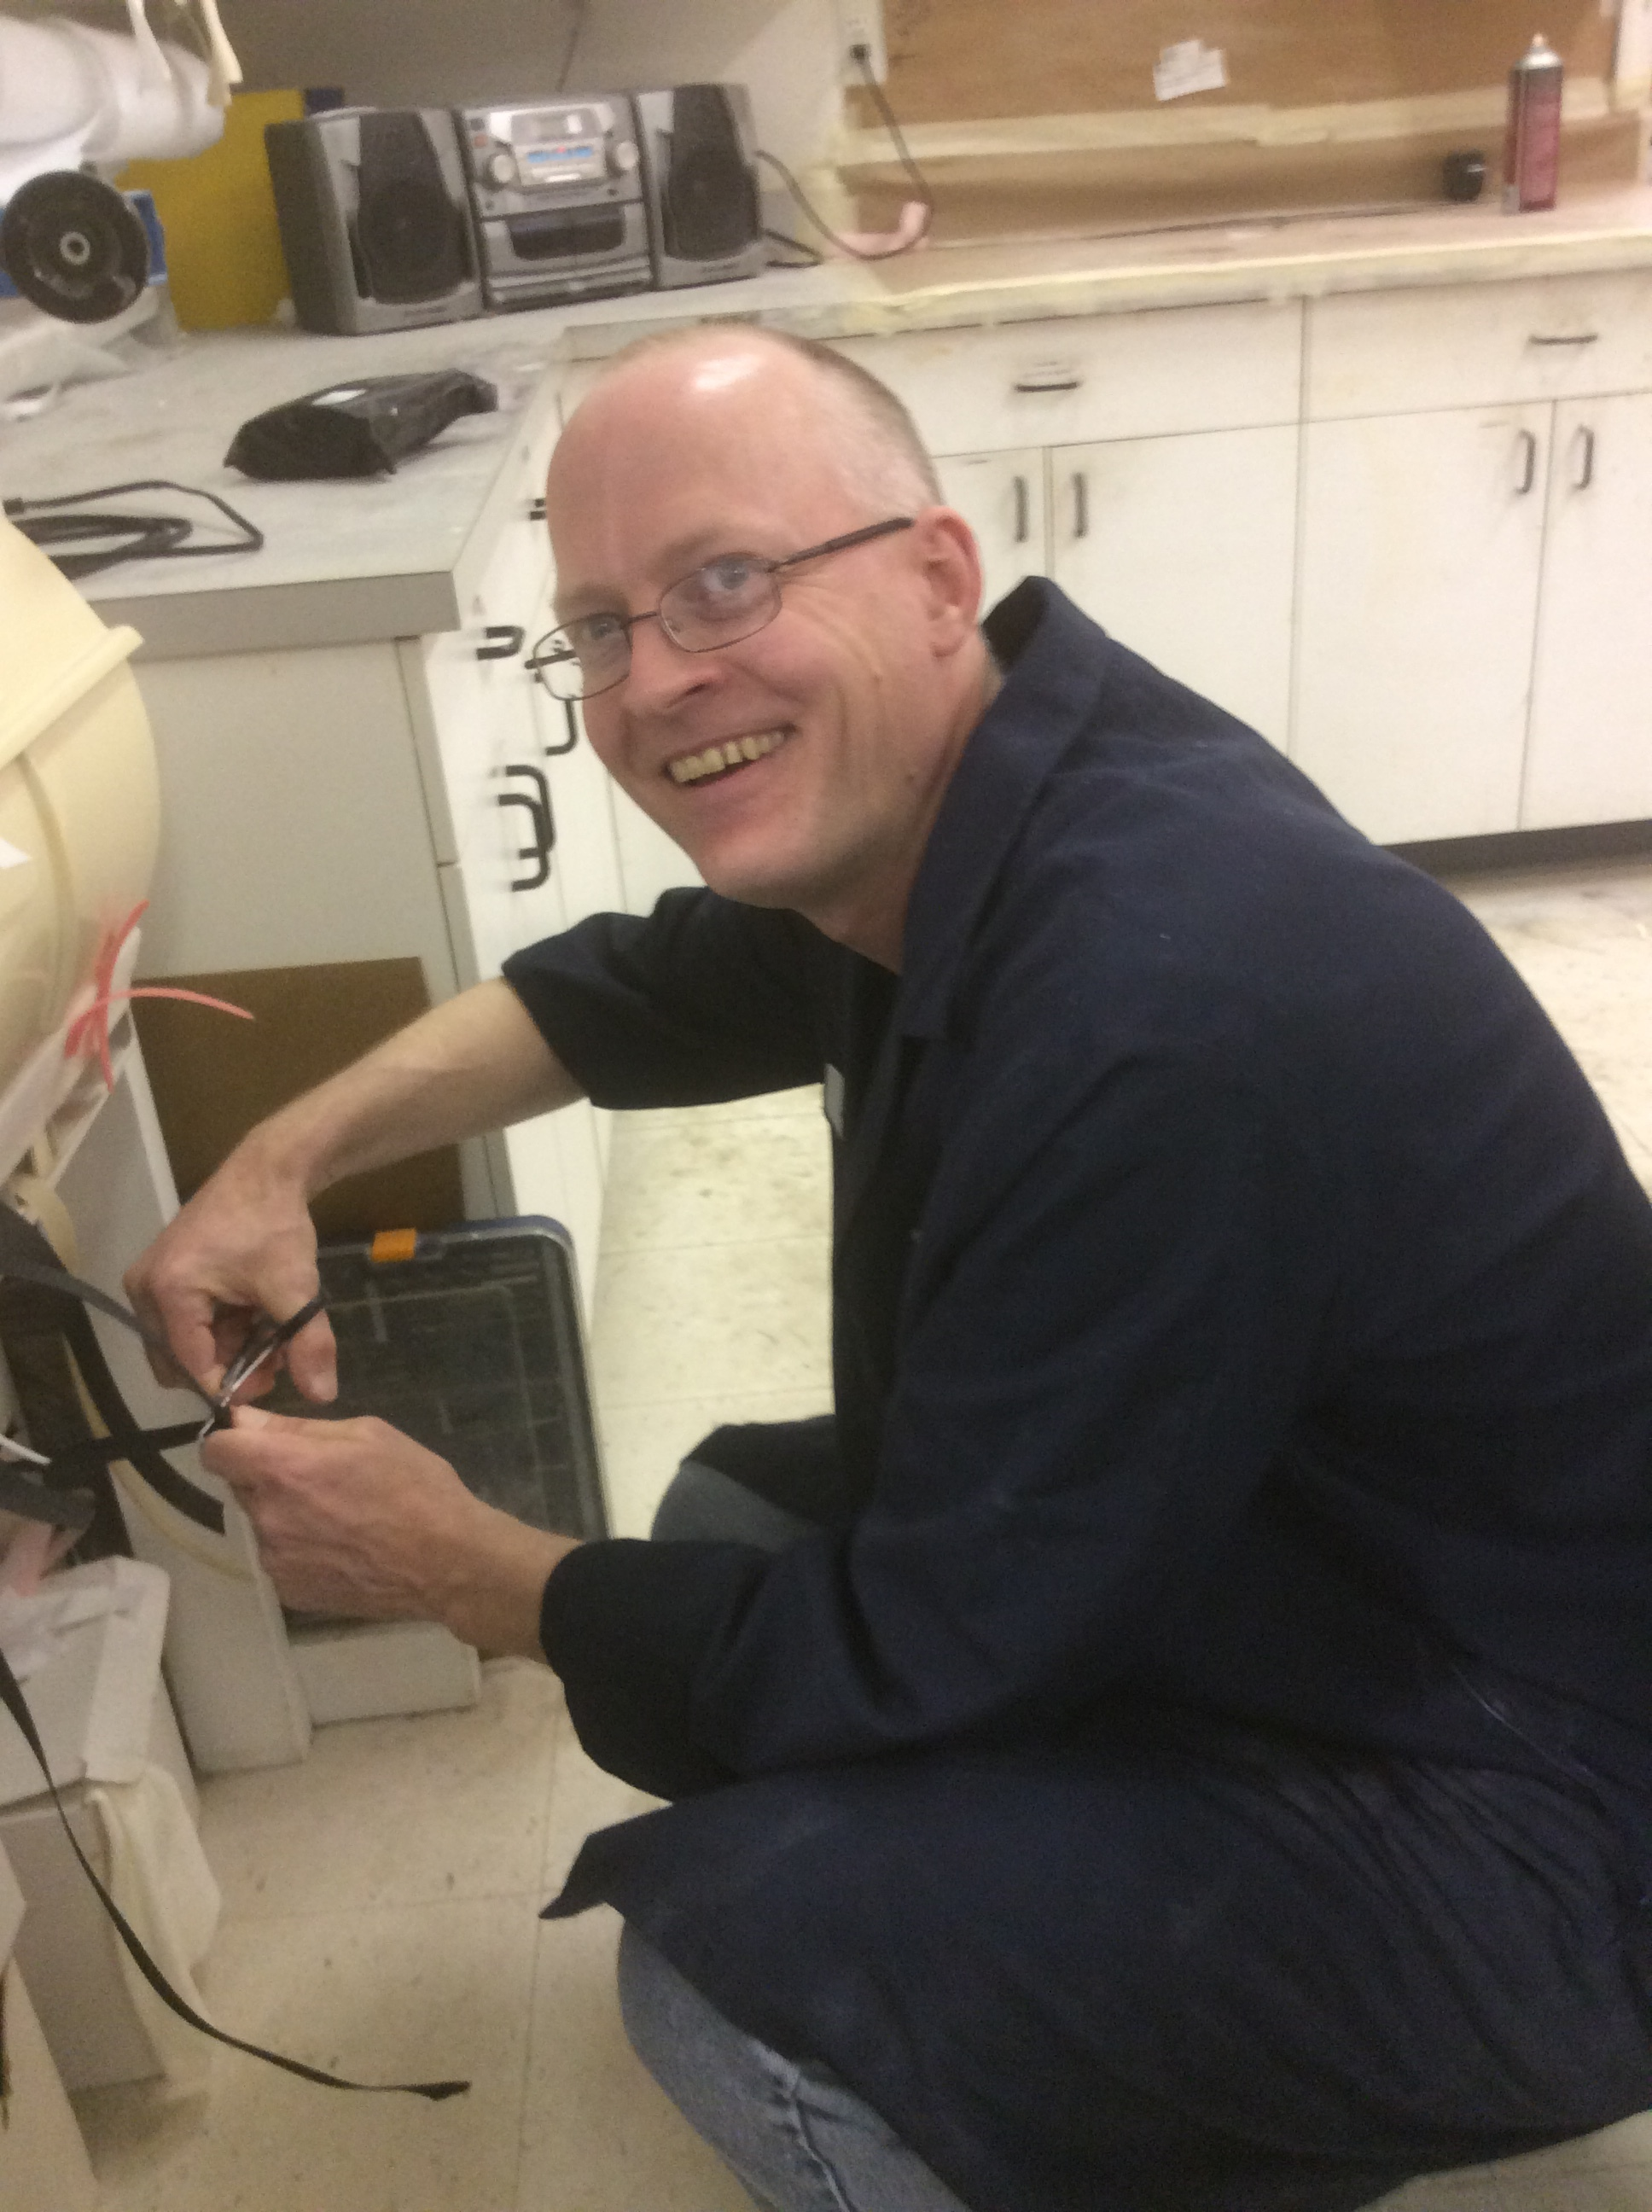 Dave Secore  Technician  Associates of Applied Science  Cert: Orthotic/Prosthetic Technician Degree  3 years in Prosthetics and Orthotics  Specialty: Pediatrics  Interests: Sports  Hobbies: Bowling and fishing.